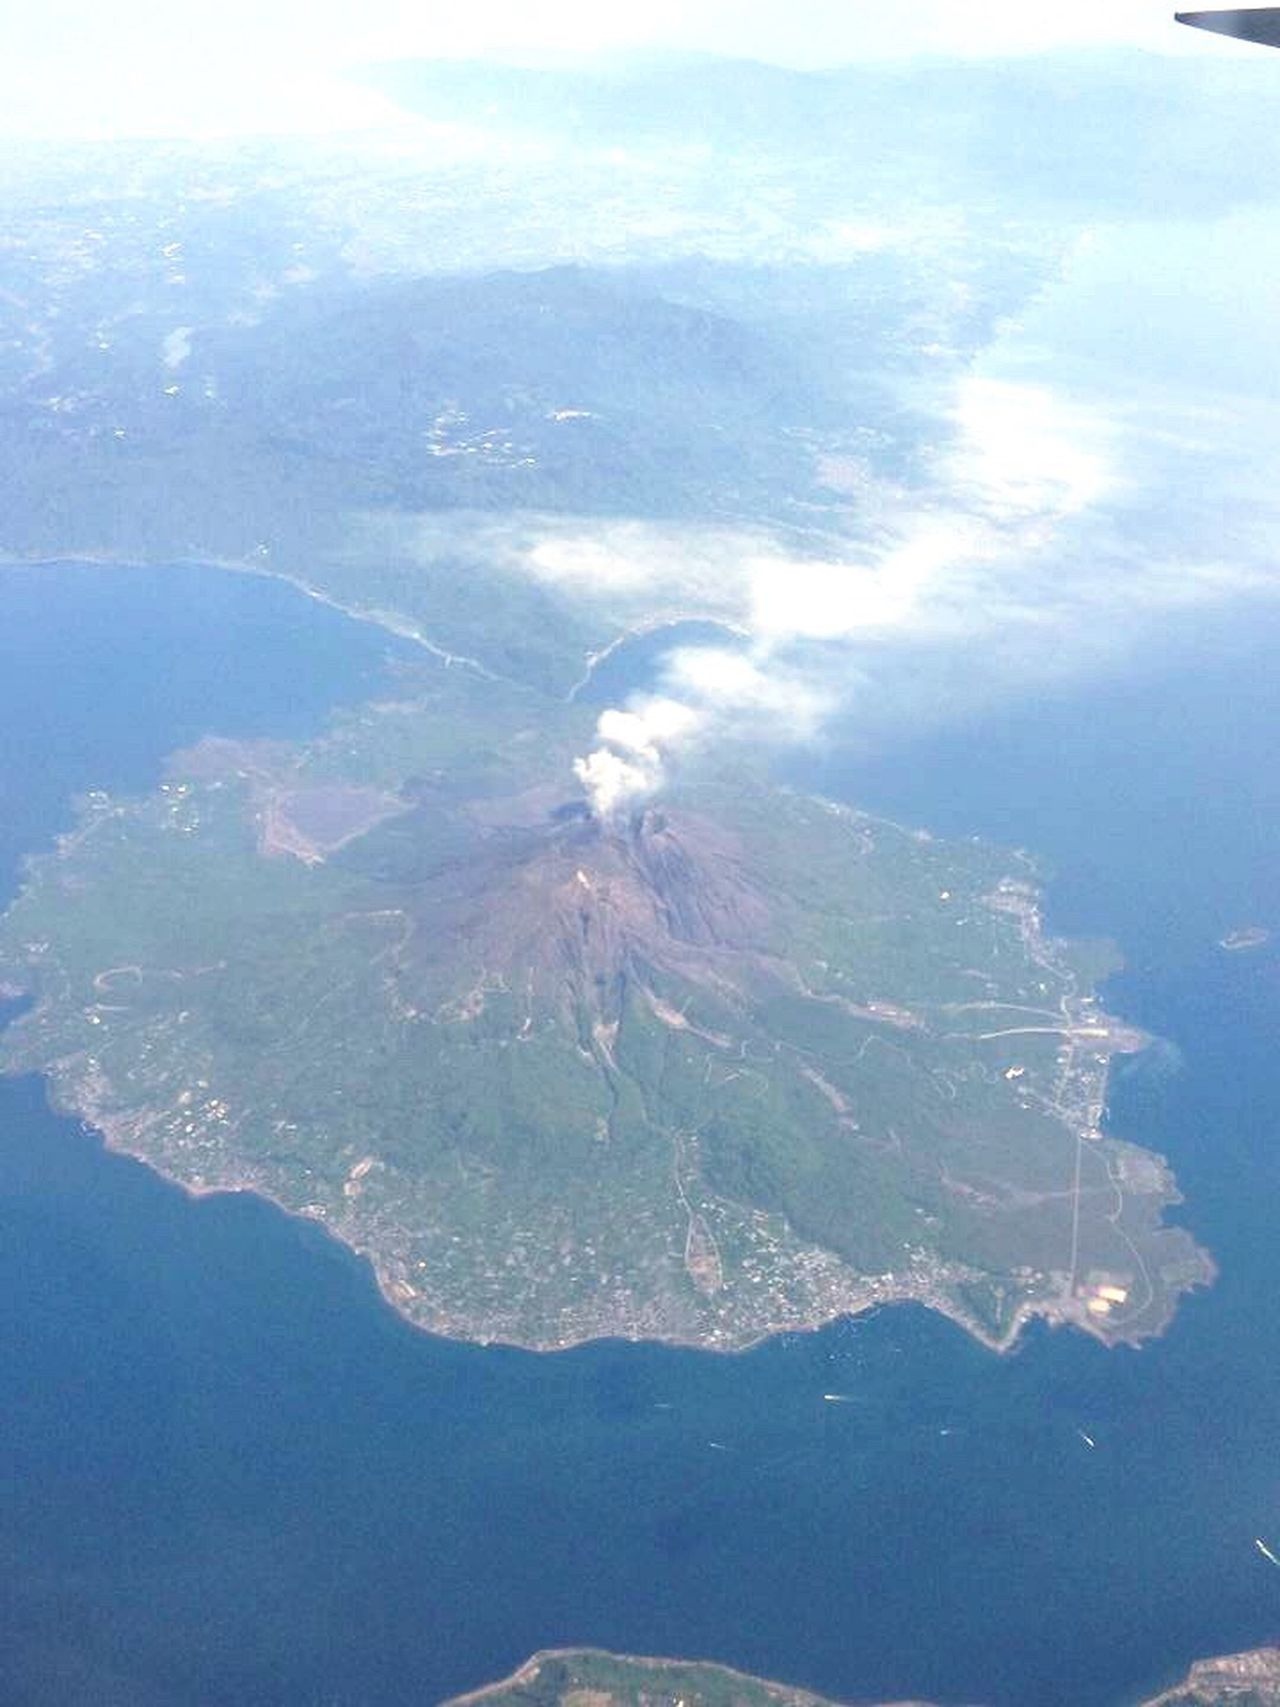 On the way back from Japan Volcano Birdeyeview Philippines Picturefromairplane Randomshot Iphone6plus Iphoneonly IPhoneography Iphonephotography Random Benzjourney Instaphoto Pictureoftheday